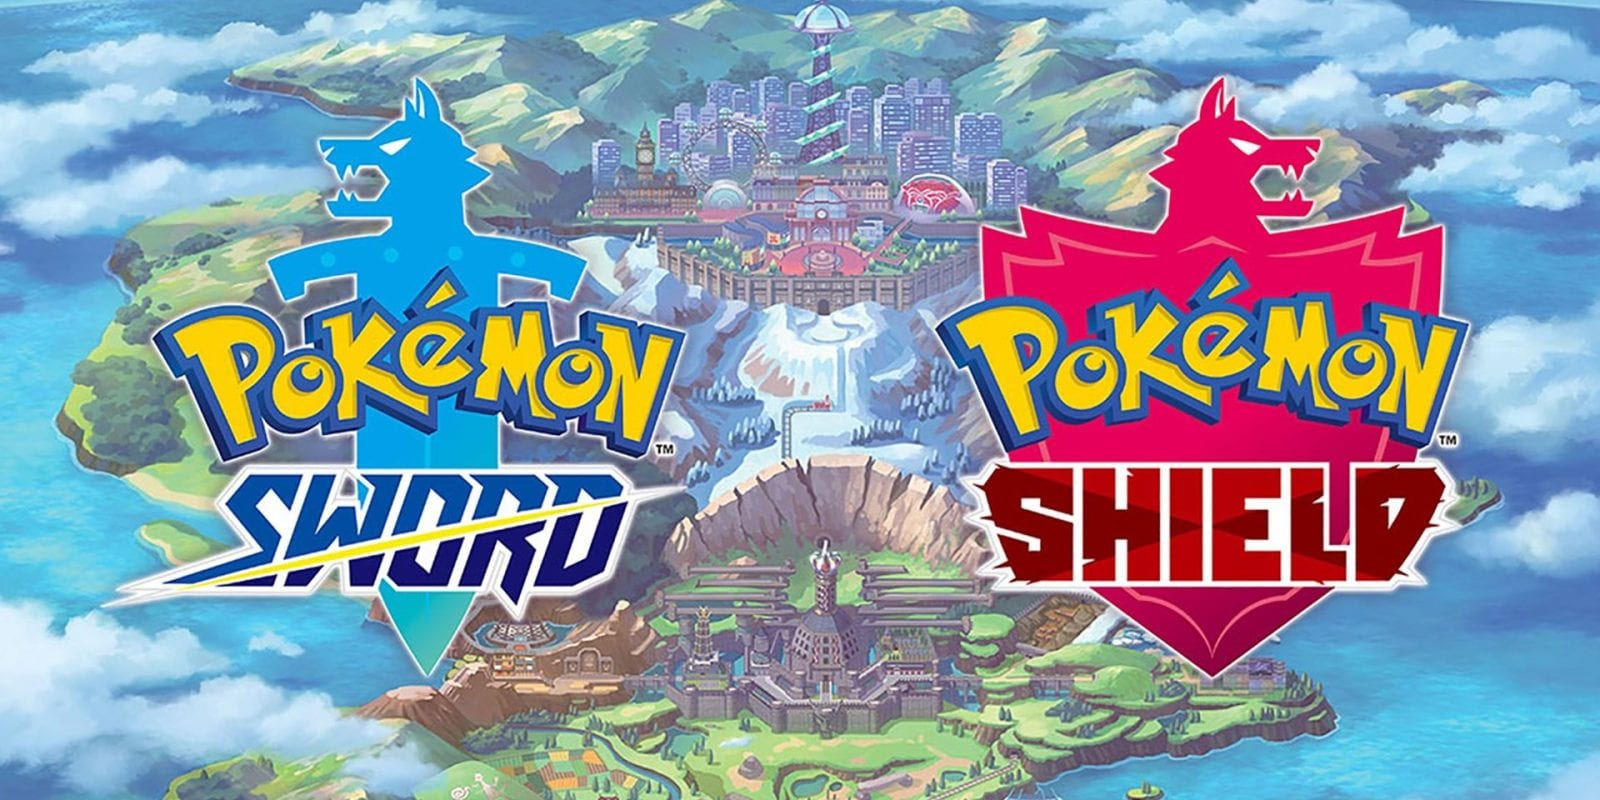 Pokemon Sword and Shield update and details